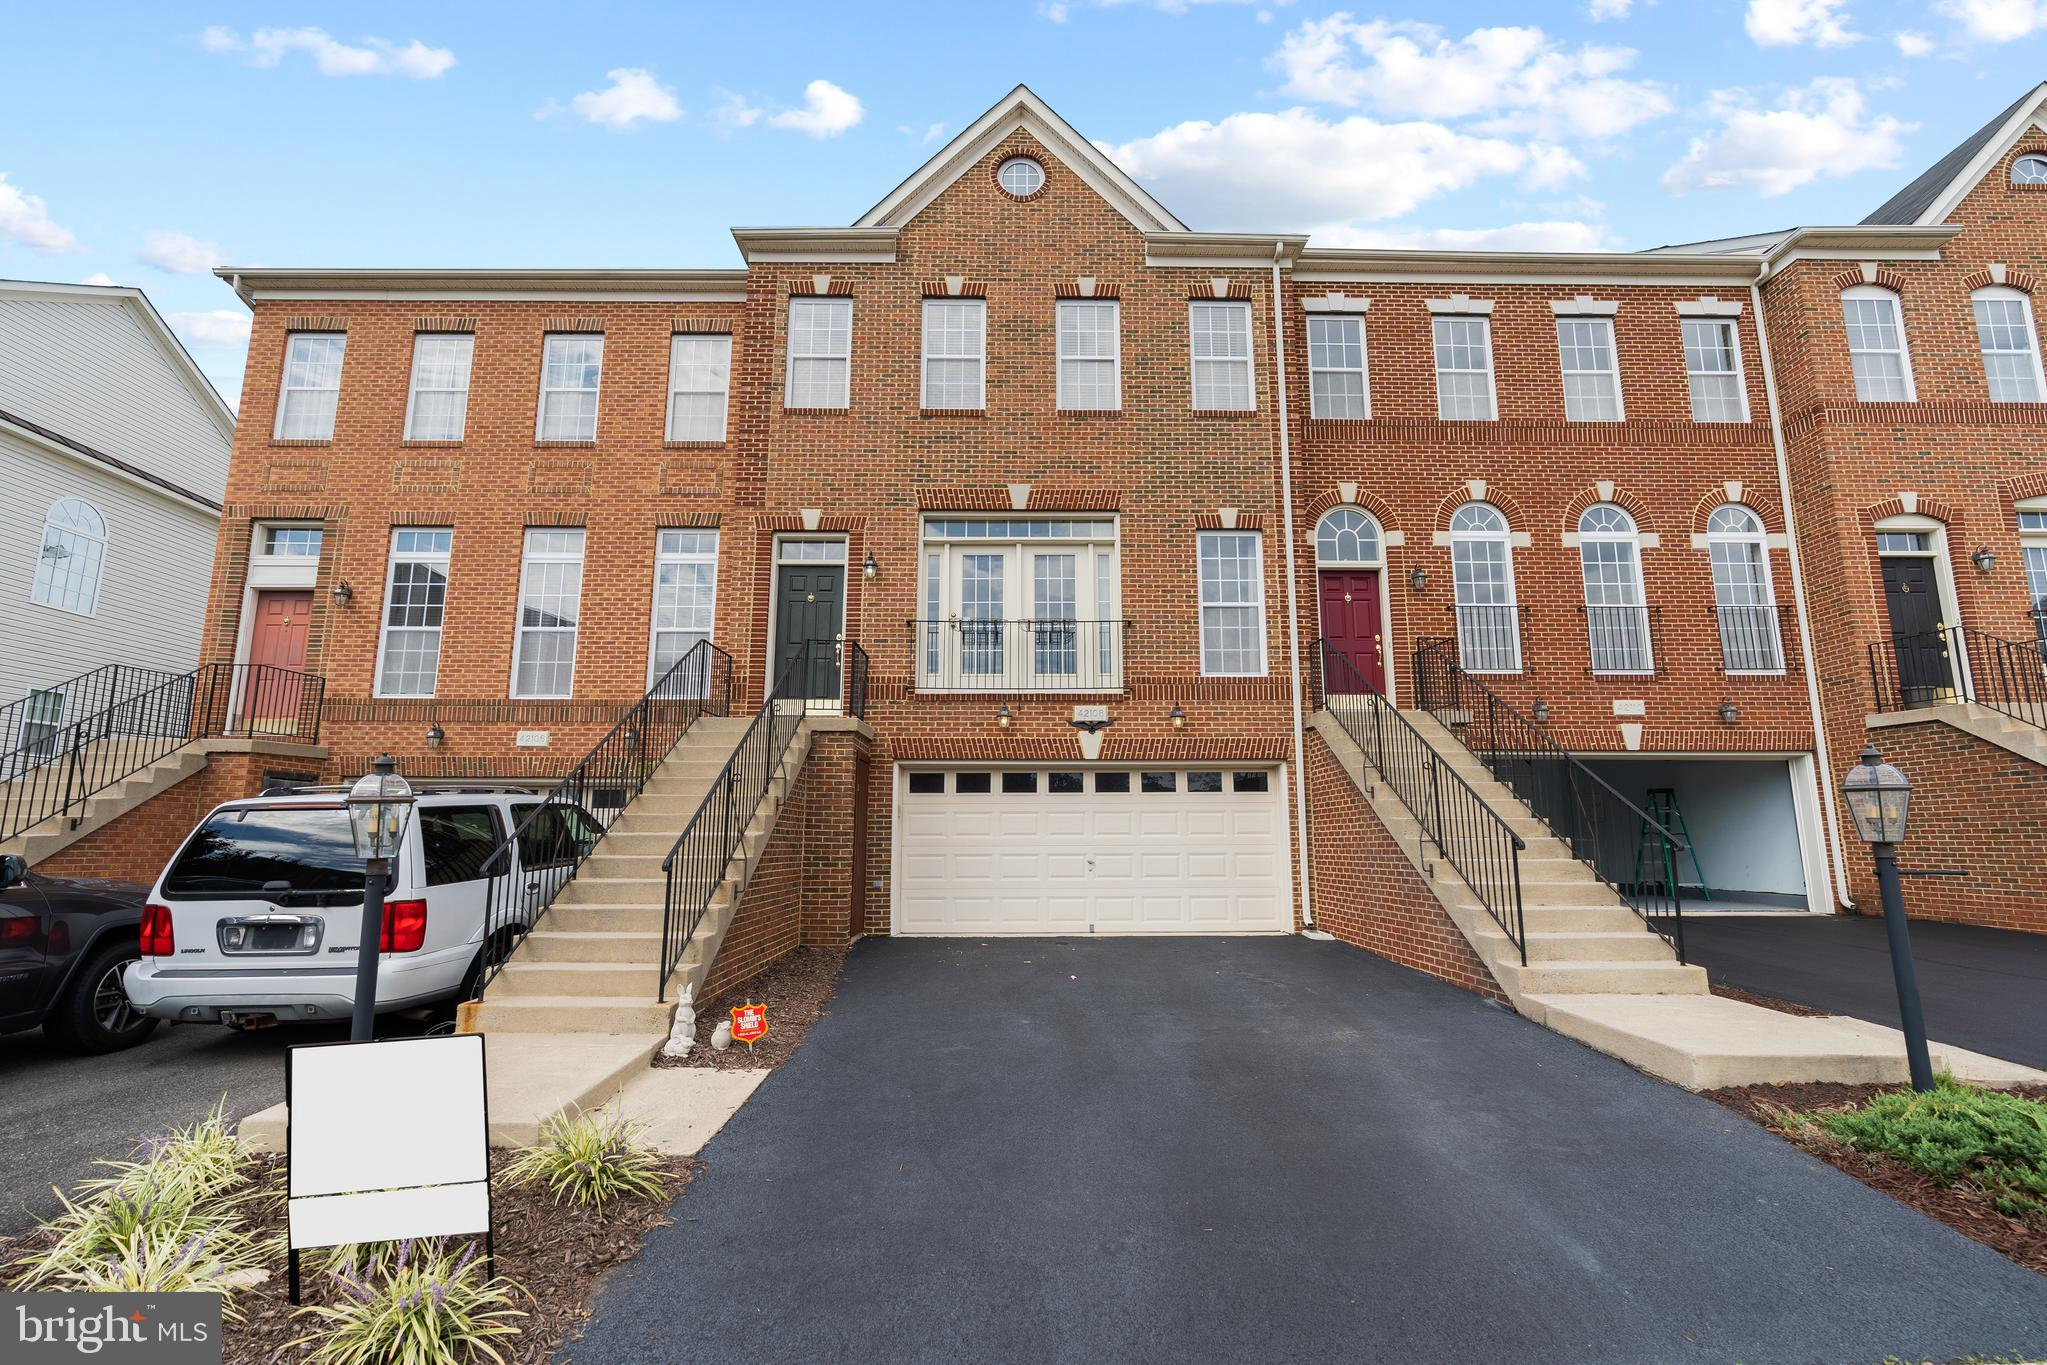 Welcome to 42108 Tanzanite Ter! The 3 bedroom, 3 full bath & 1 half bath garage townhome is located